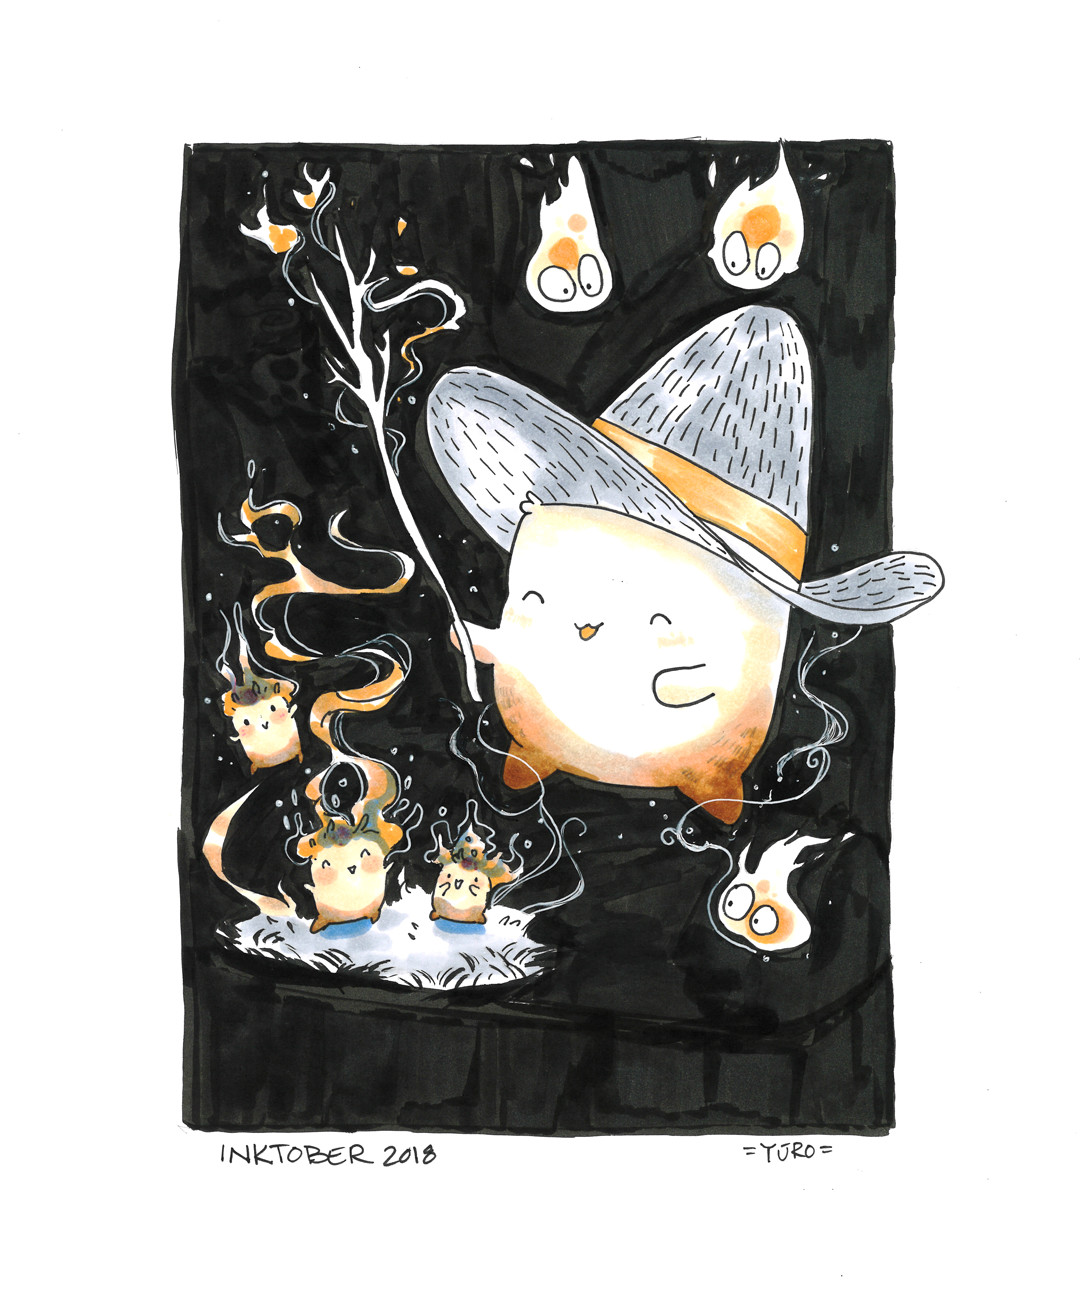 Mallow Wizard Conjuring Friends!